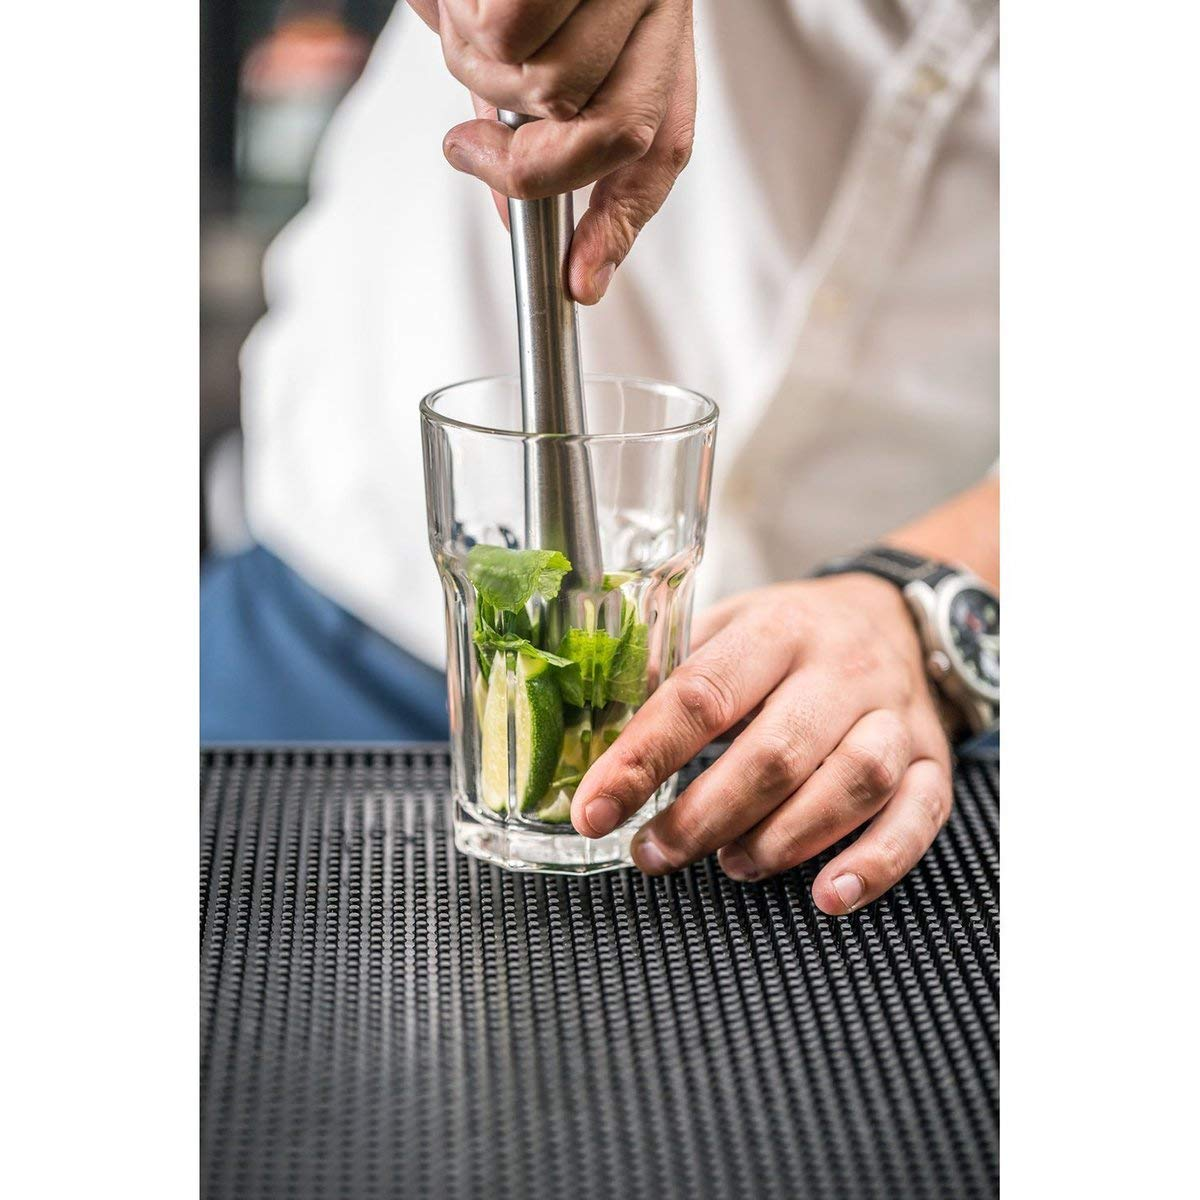 8in Drink Muddler with Mixing Spoon and Jigger (1/2oz, 1oz) - Metal Stainless Steel Cocktail Professional Muddler Bar Tool Set, Dishwasher Safe by Aulpon (Image #3)